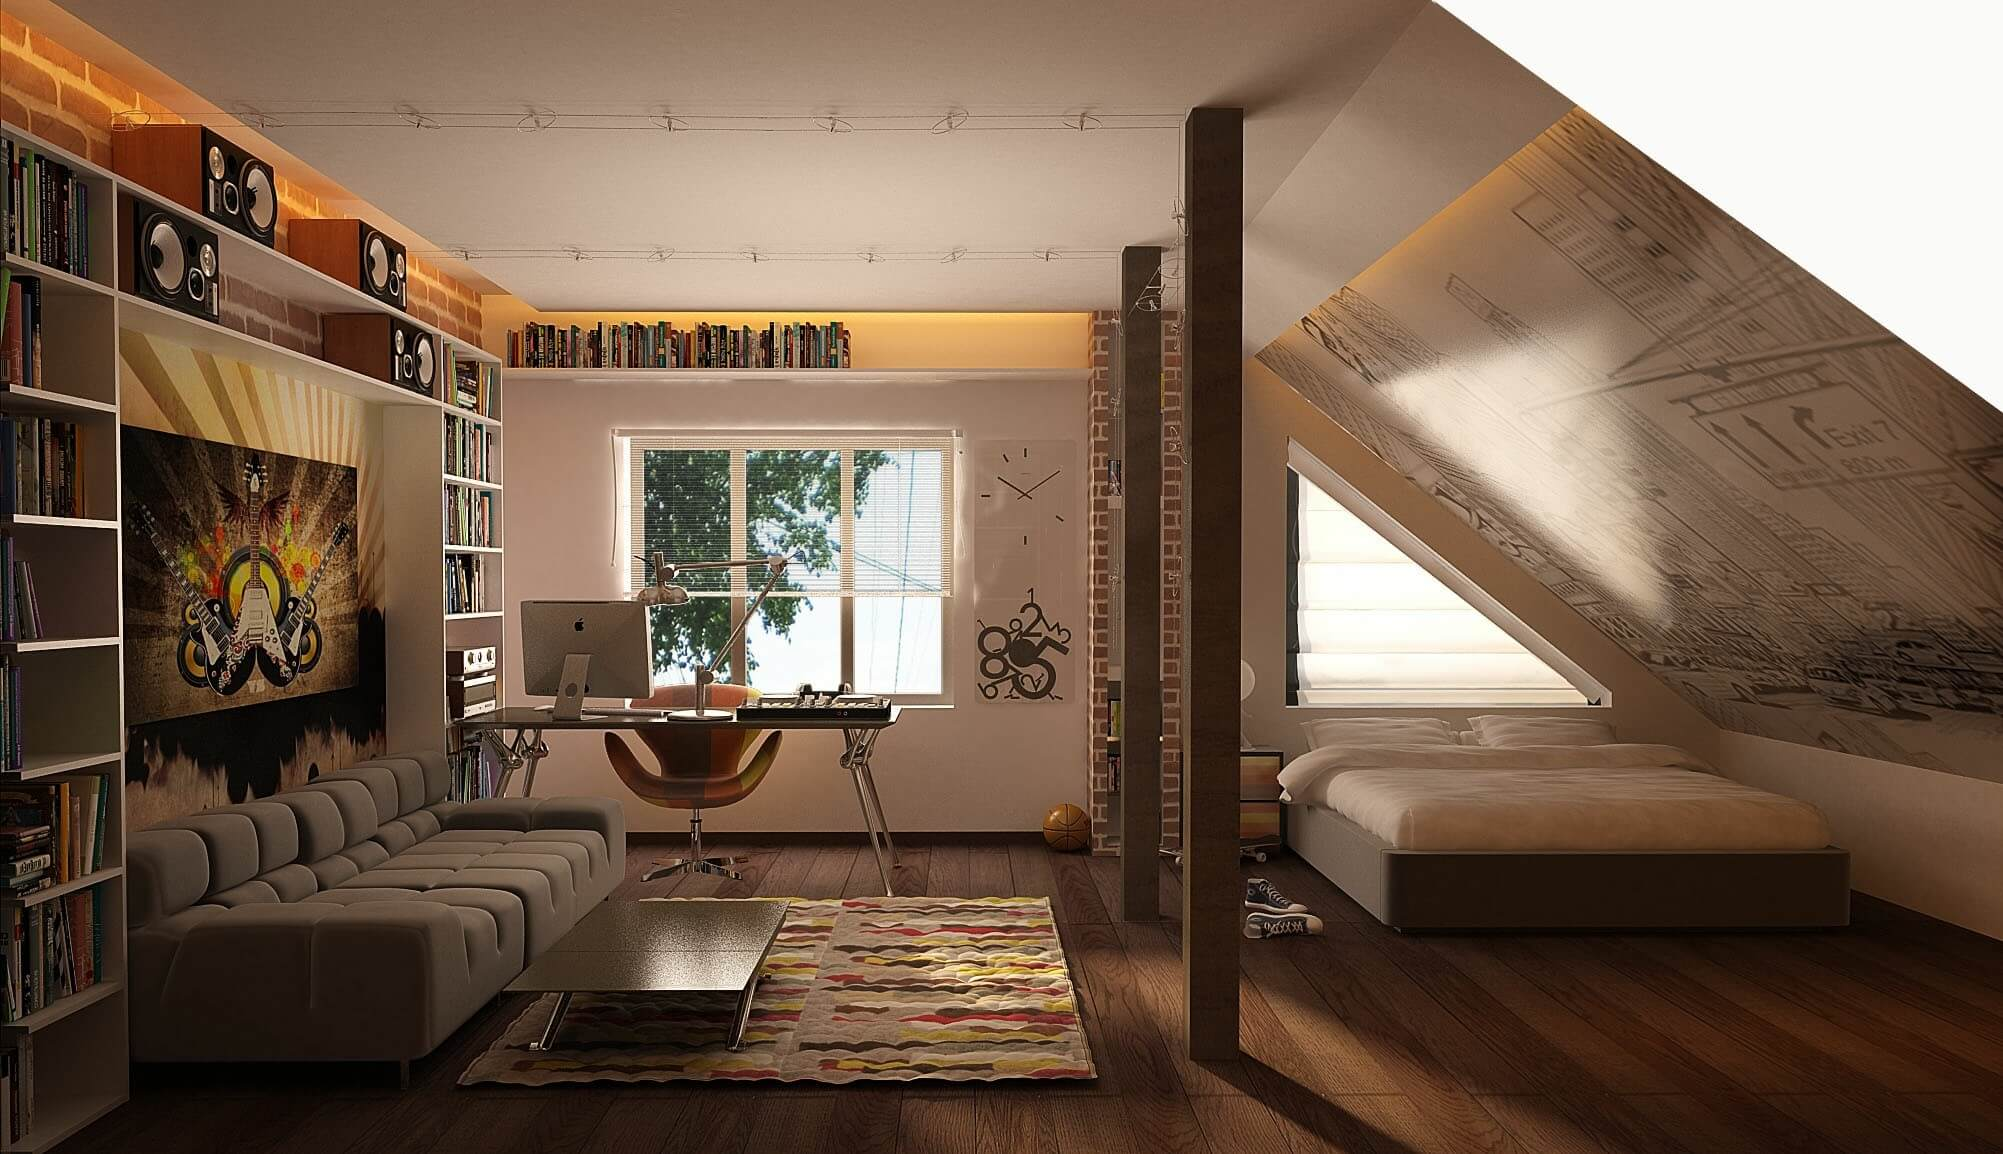 Modern looking bedroom with bookshelves and sloped ceiling, the bed in a corner with a work office desk is placed in front of the large window. Also a large grey sofa with a small magazine table for relaxation.